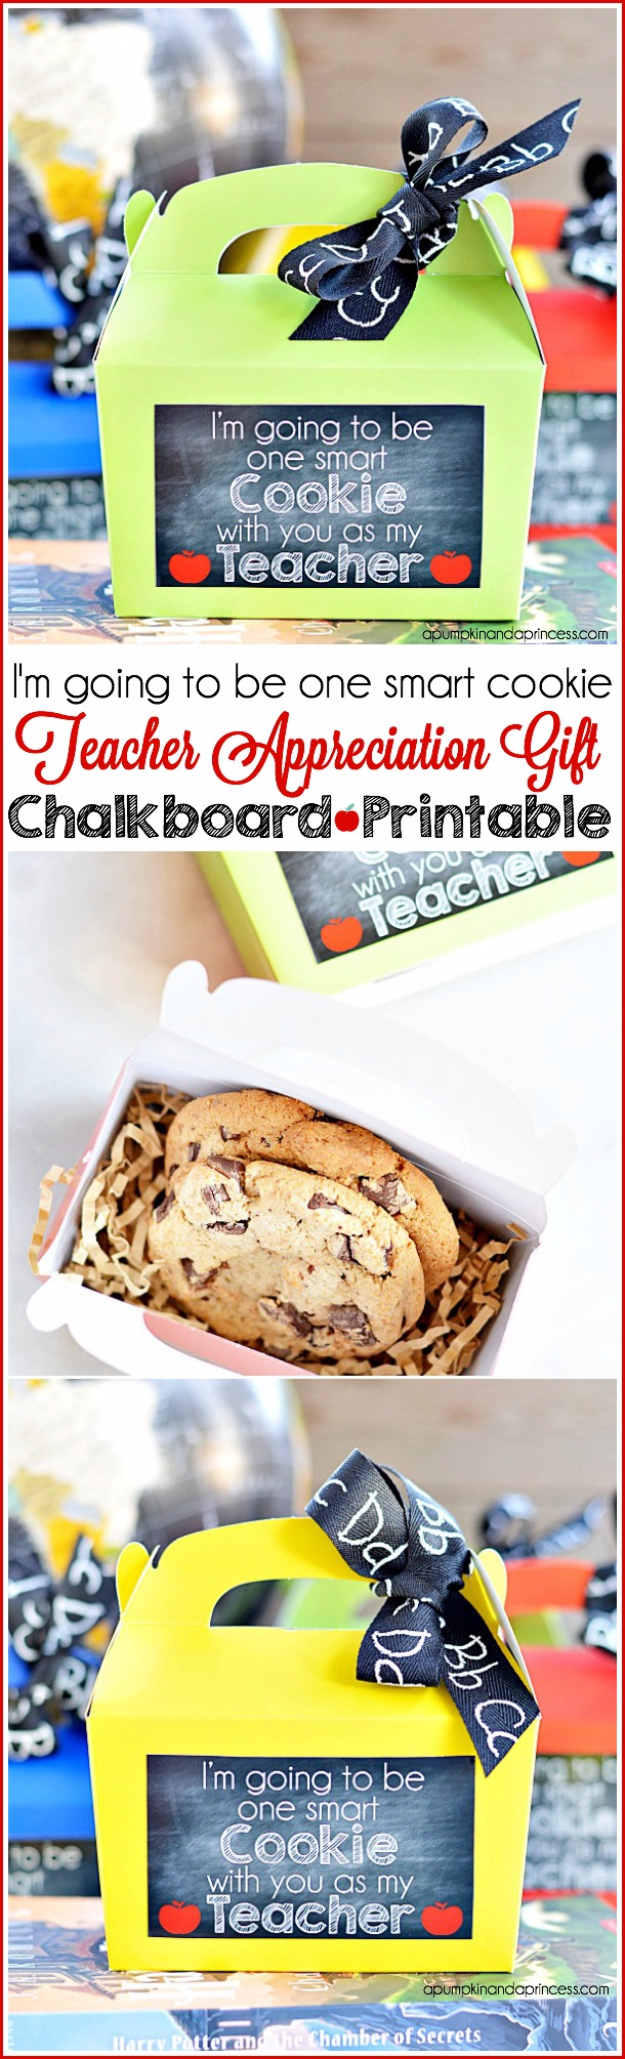 DIY Teacher Gifts - Cookie Teacher Gift - Cheap and Easy Presents and DIY Gift Ideas for Teachers at Christmas, End of Year, First Day and Birthday - Teacher Appreciation Gifts and Crafts - Cute Mason Jar Ideas and Thoughtful, Unique Gifts from Kids http://diyjoy.com/diy-teacher-gifts